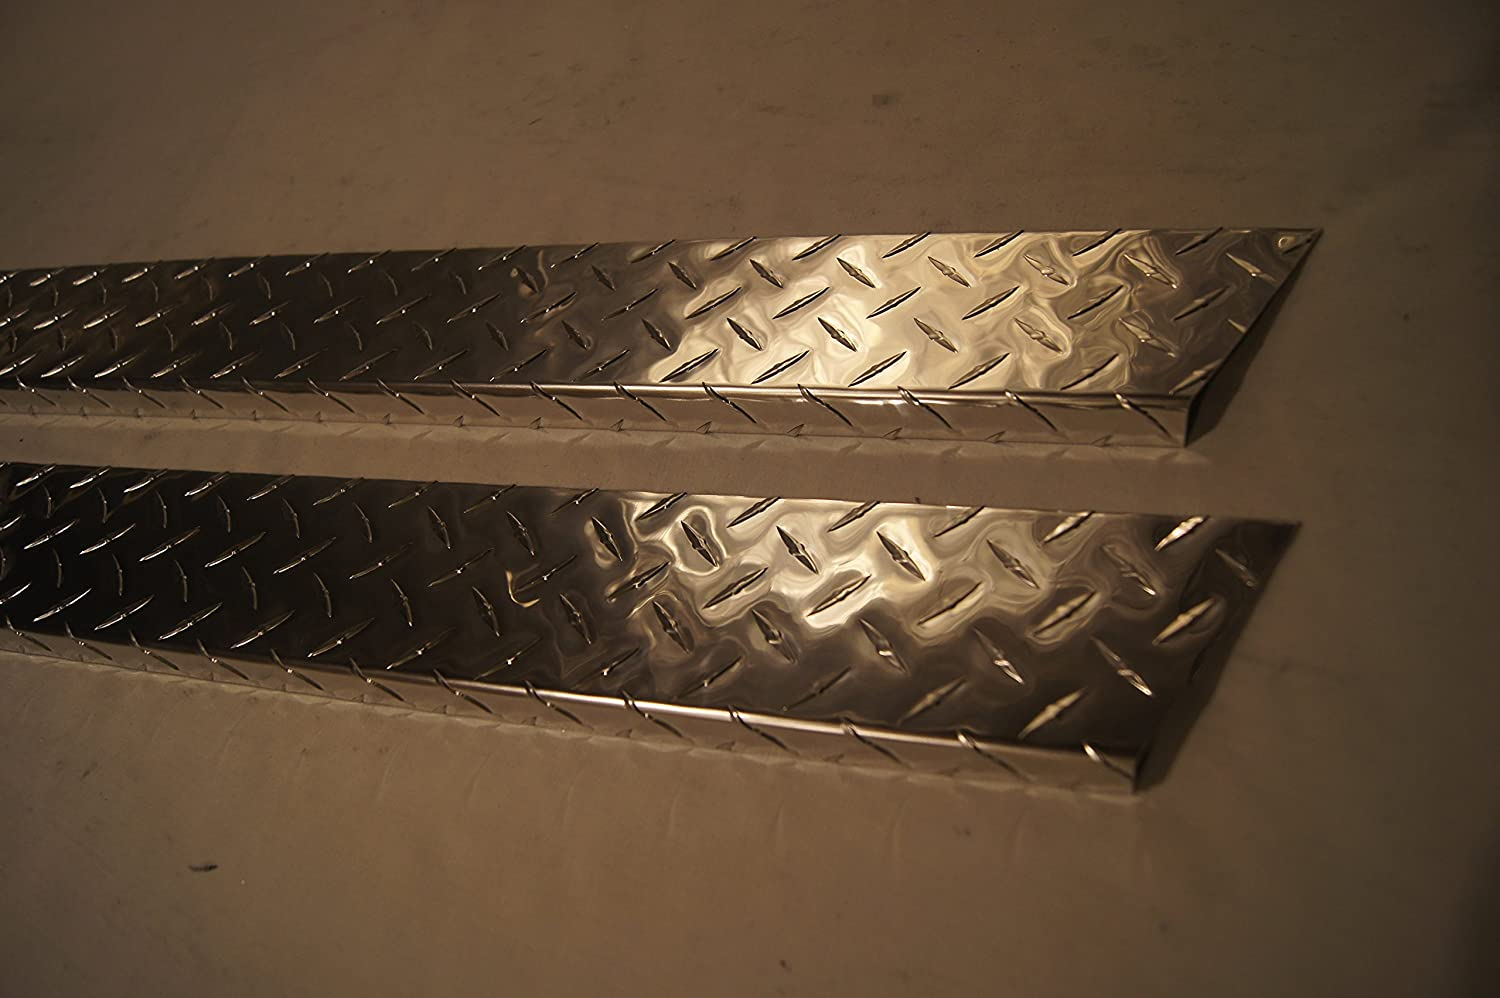 Jeep Diamond Plate 2004-2006 LJ Wrangler Unlimited Black Off-Road 5 3//4 Rocker Panel Covers with Cut Outs